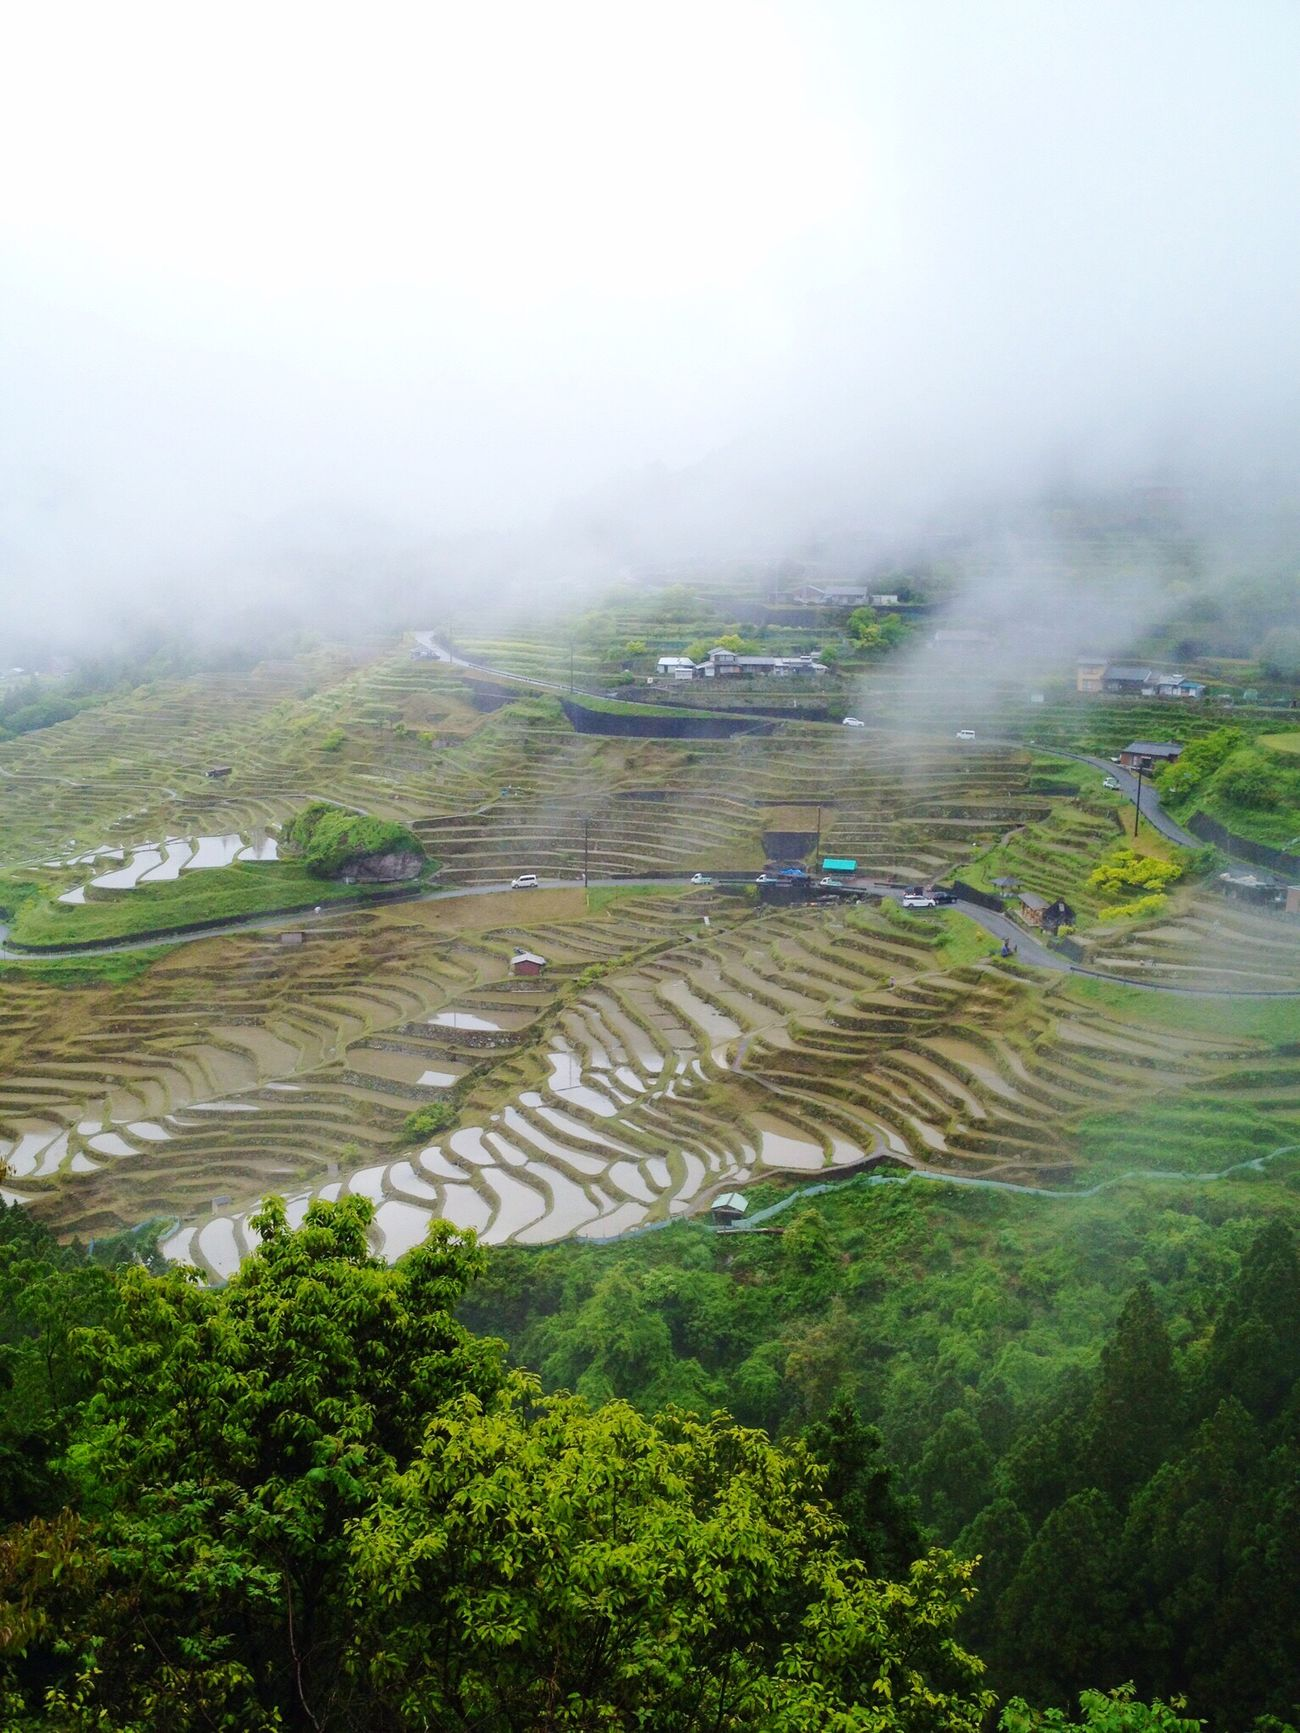 Agriculture Scenics Landscape Beauty In Nature Timescape TranquilityyTranquil SceneeFielddTerraced FielddNatureeOutdoorssRice - Cereal PlanttHigh Angle ViewwRice PaddyyNo Peoplee SkyyDayy